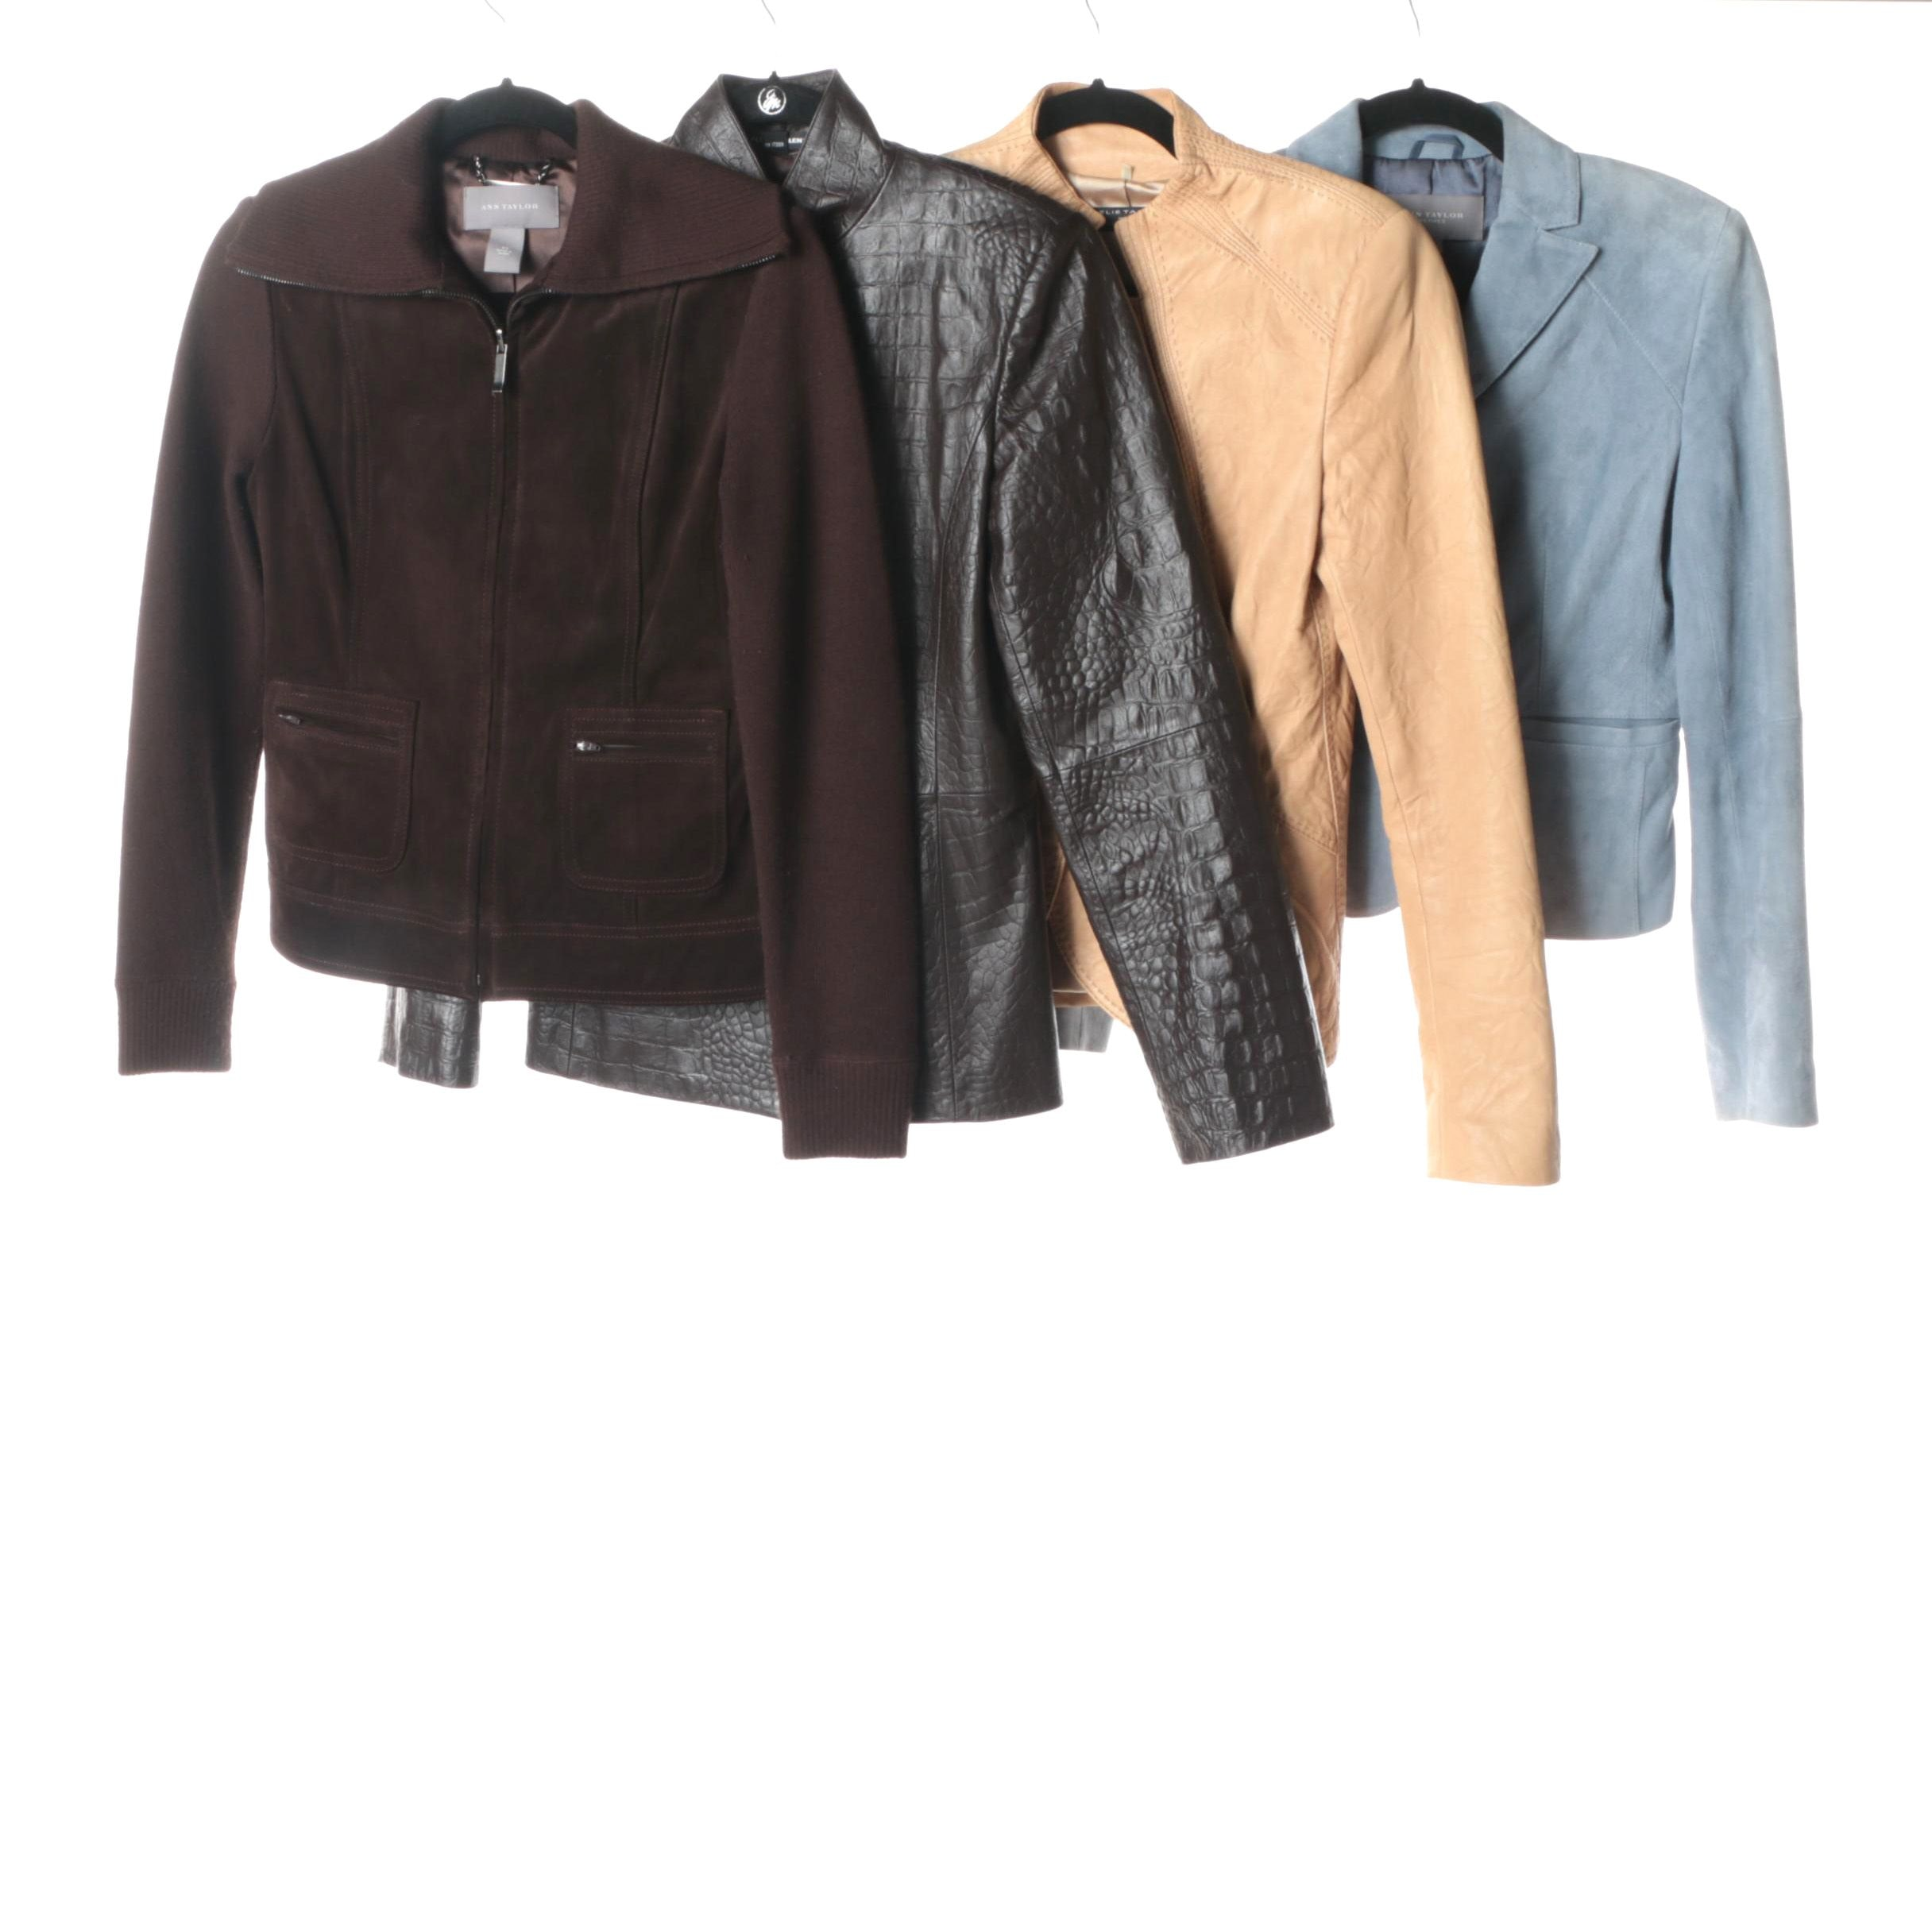 Women's Leather and Suede Jackets Including Elie Tahari